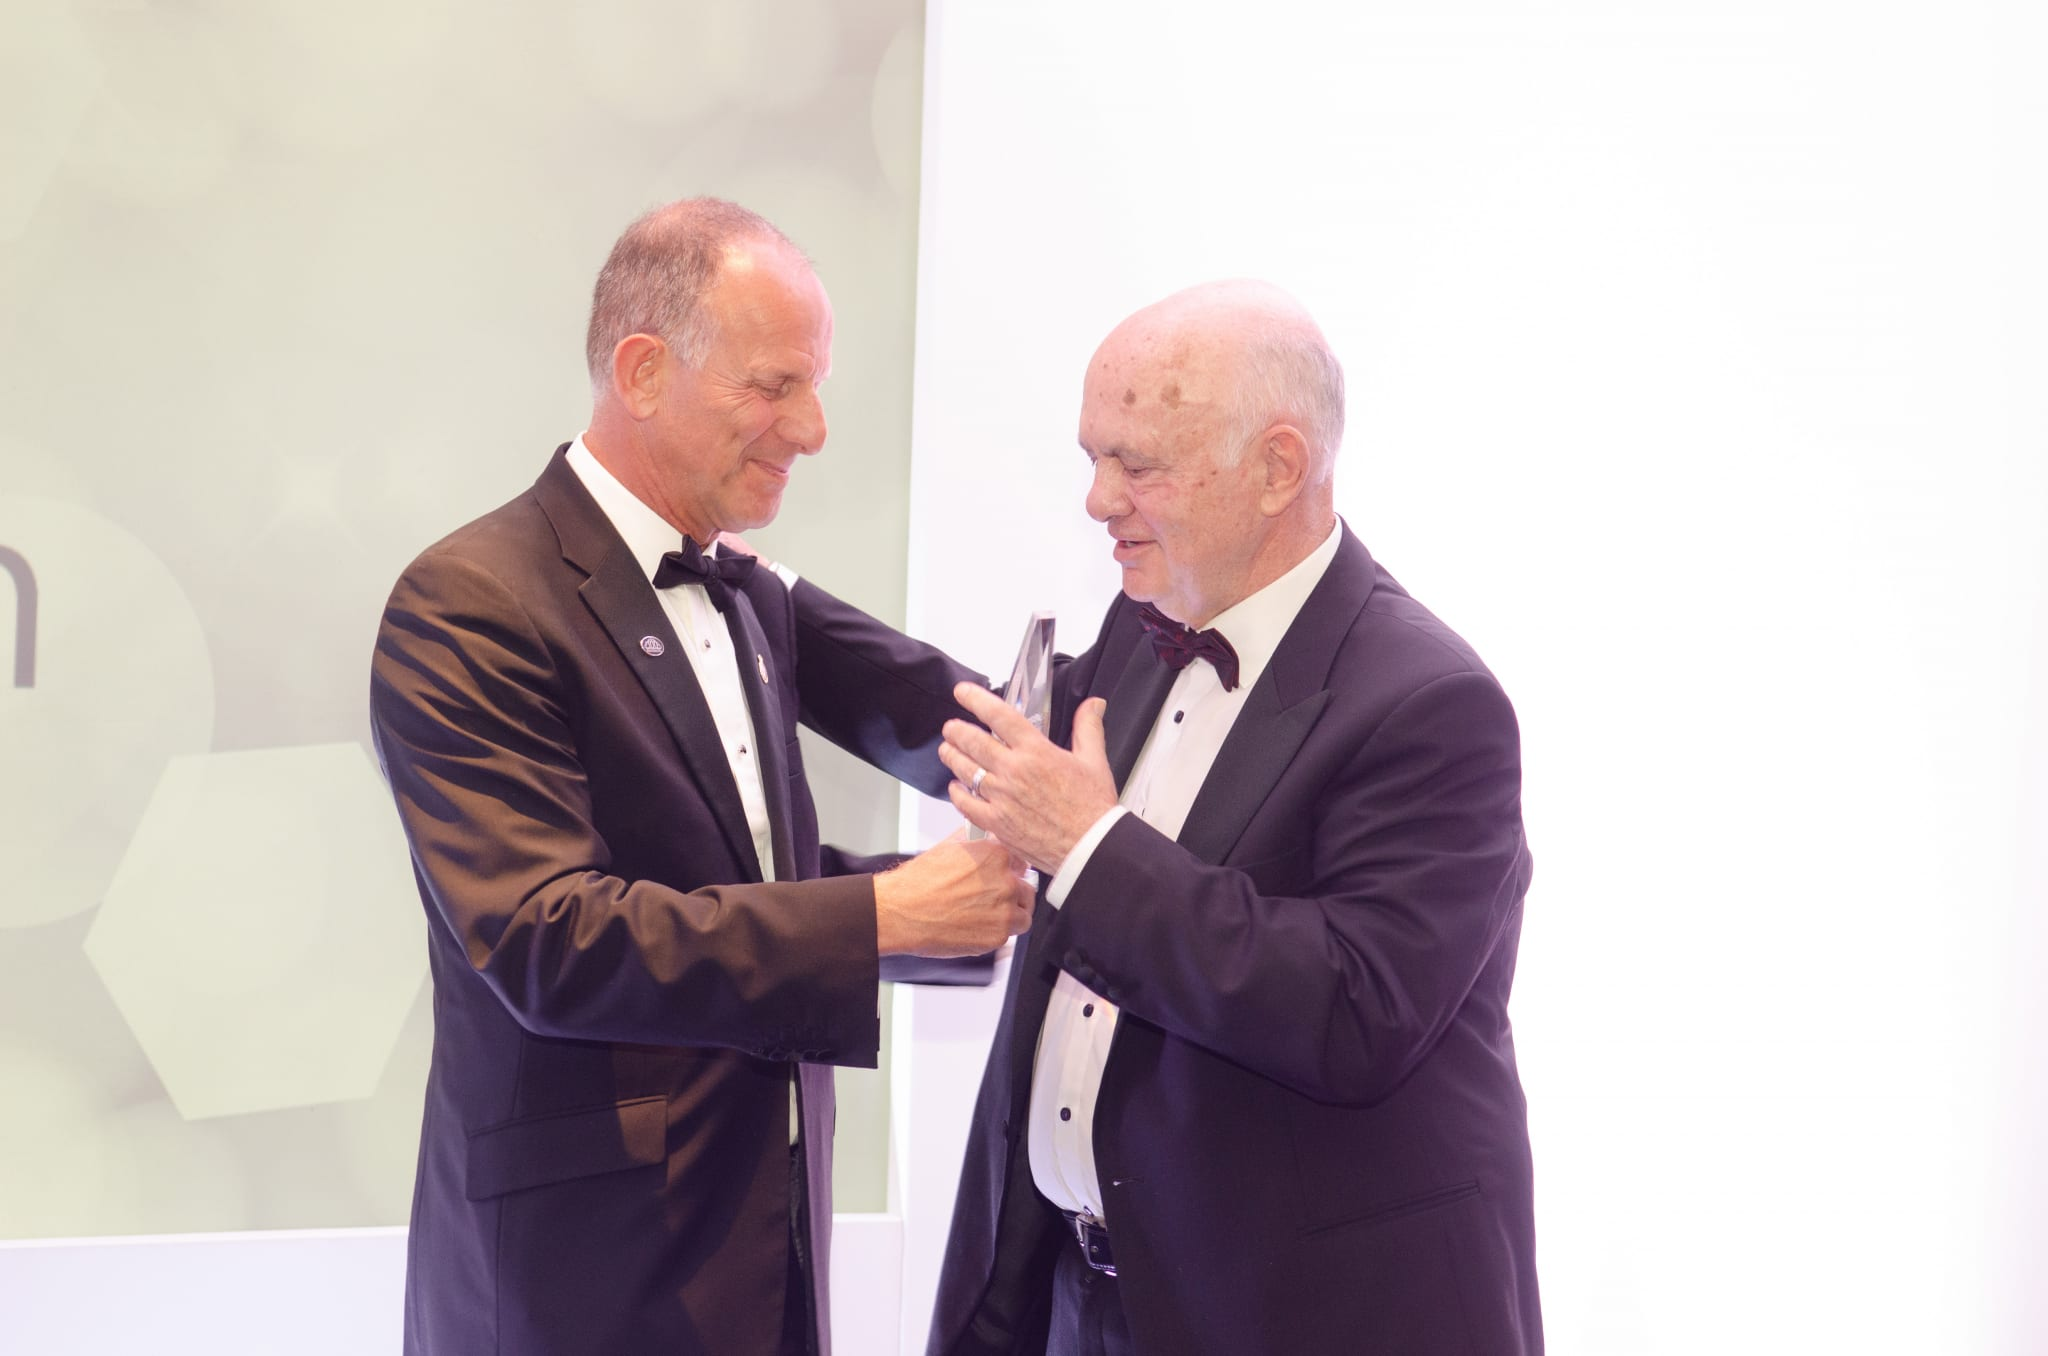 Andrew Brown MBE receives standing ovation as 57 years' service to the industry is honoured